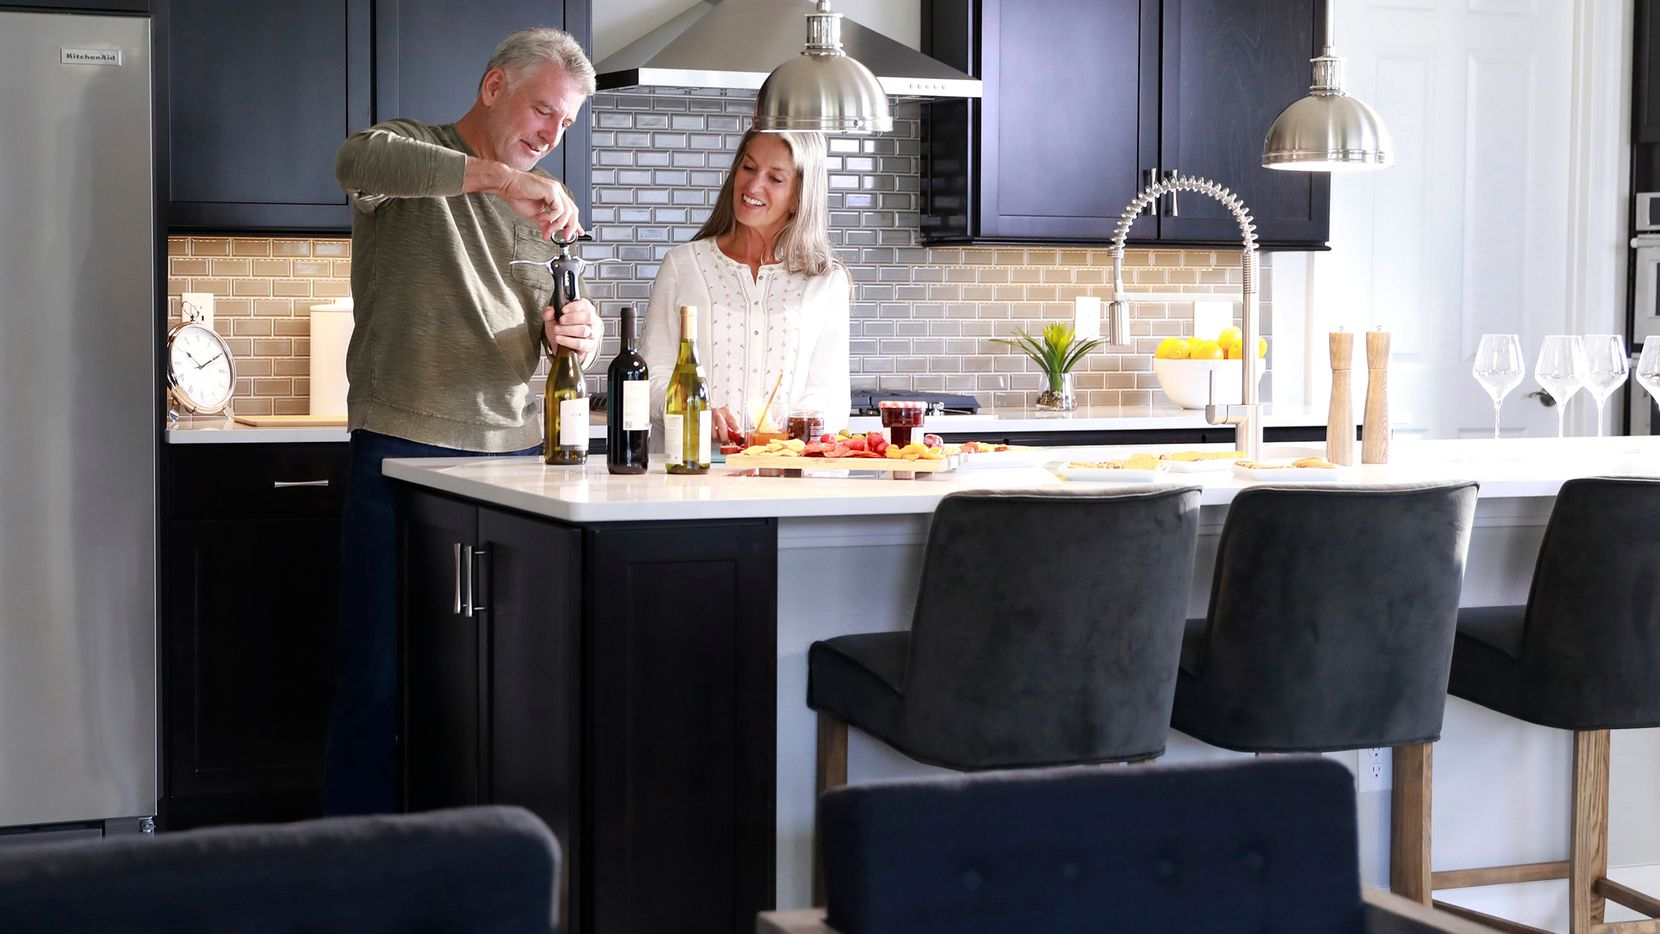 Del Webb homes feature open-concept layouts that lend themselves to entertaining, while flex spaces ensure owners can personalize their homes to suit their needs.